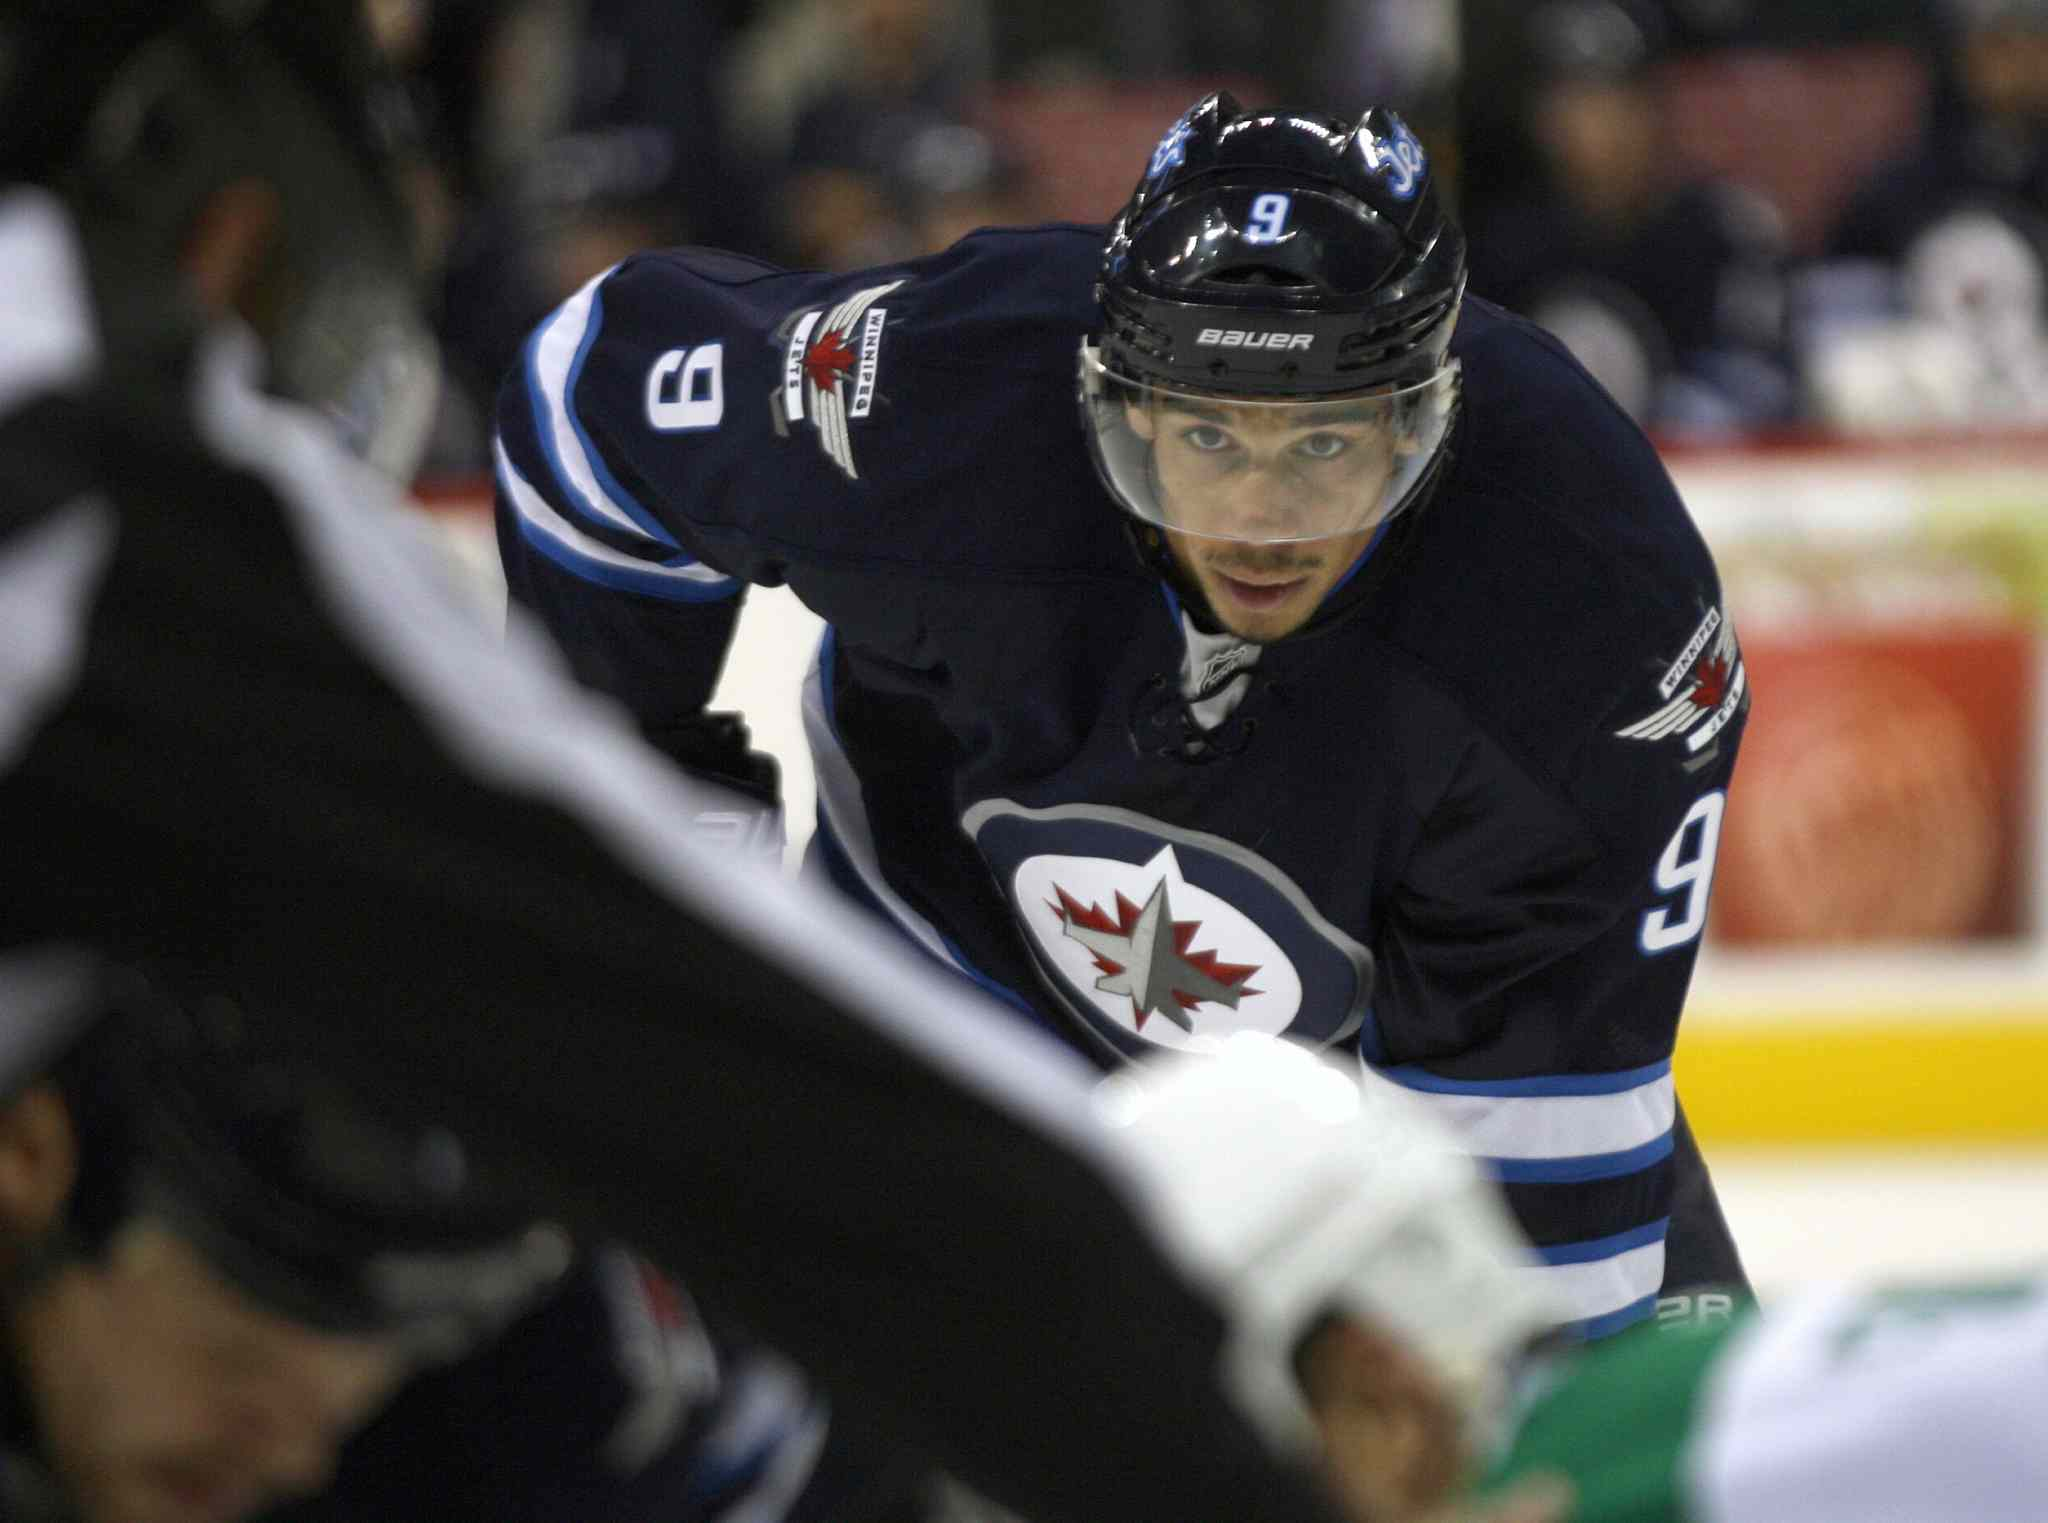 Evander Kane keeps his eyes on the puck during a faceoff in the second period.